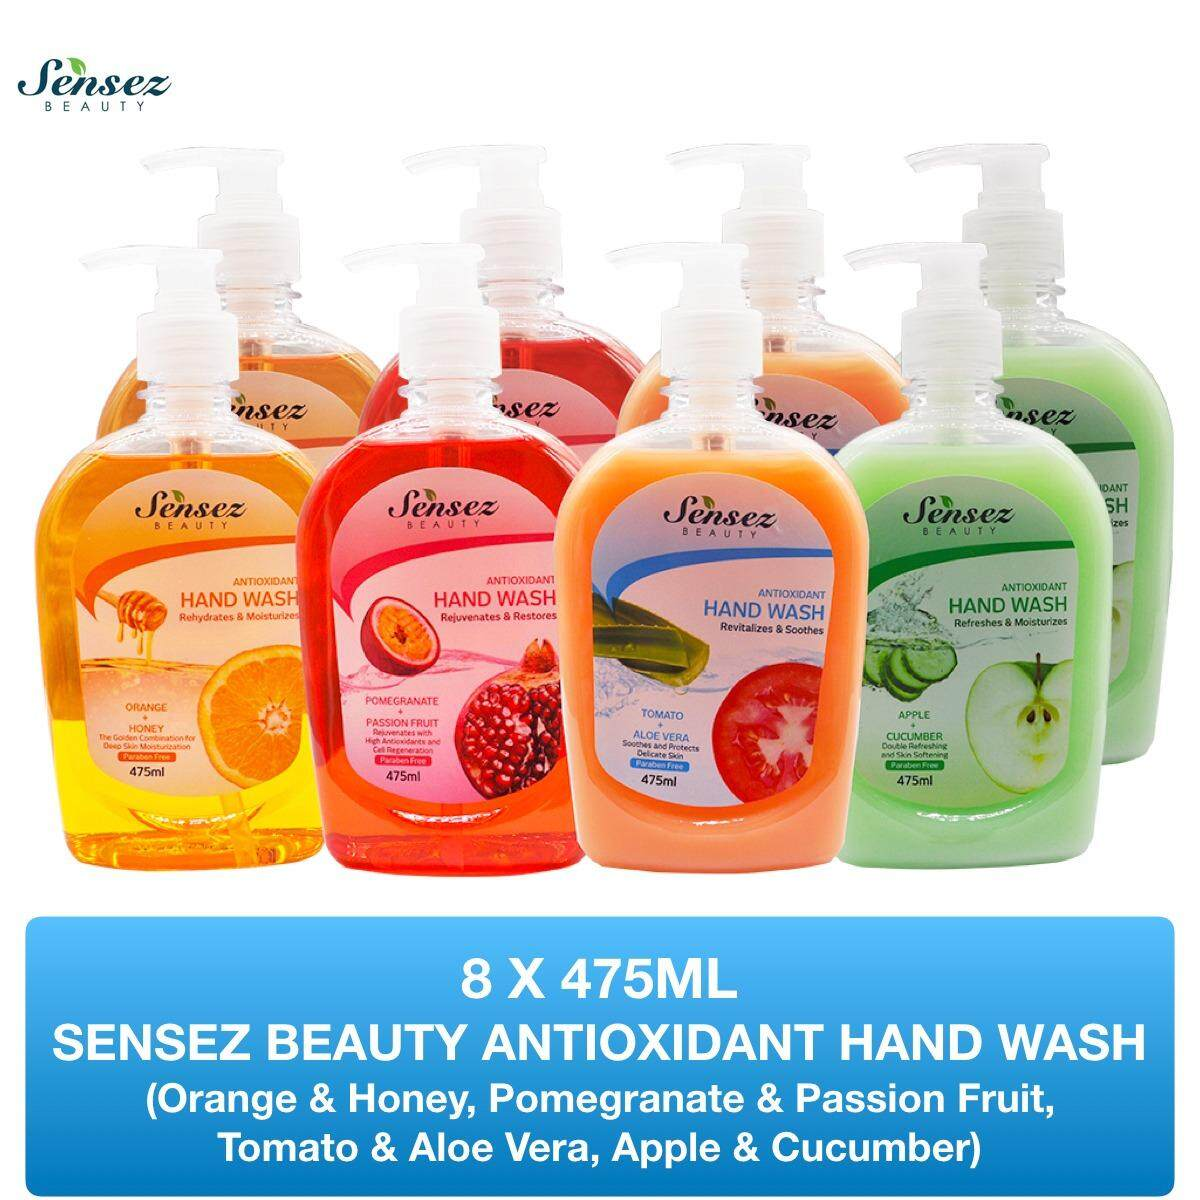 Hand Washes And Sanitizers Buy At Best Dettol Wash Sensitive 200 Ml Pouch 2 Pcs Price In Malaysia